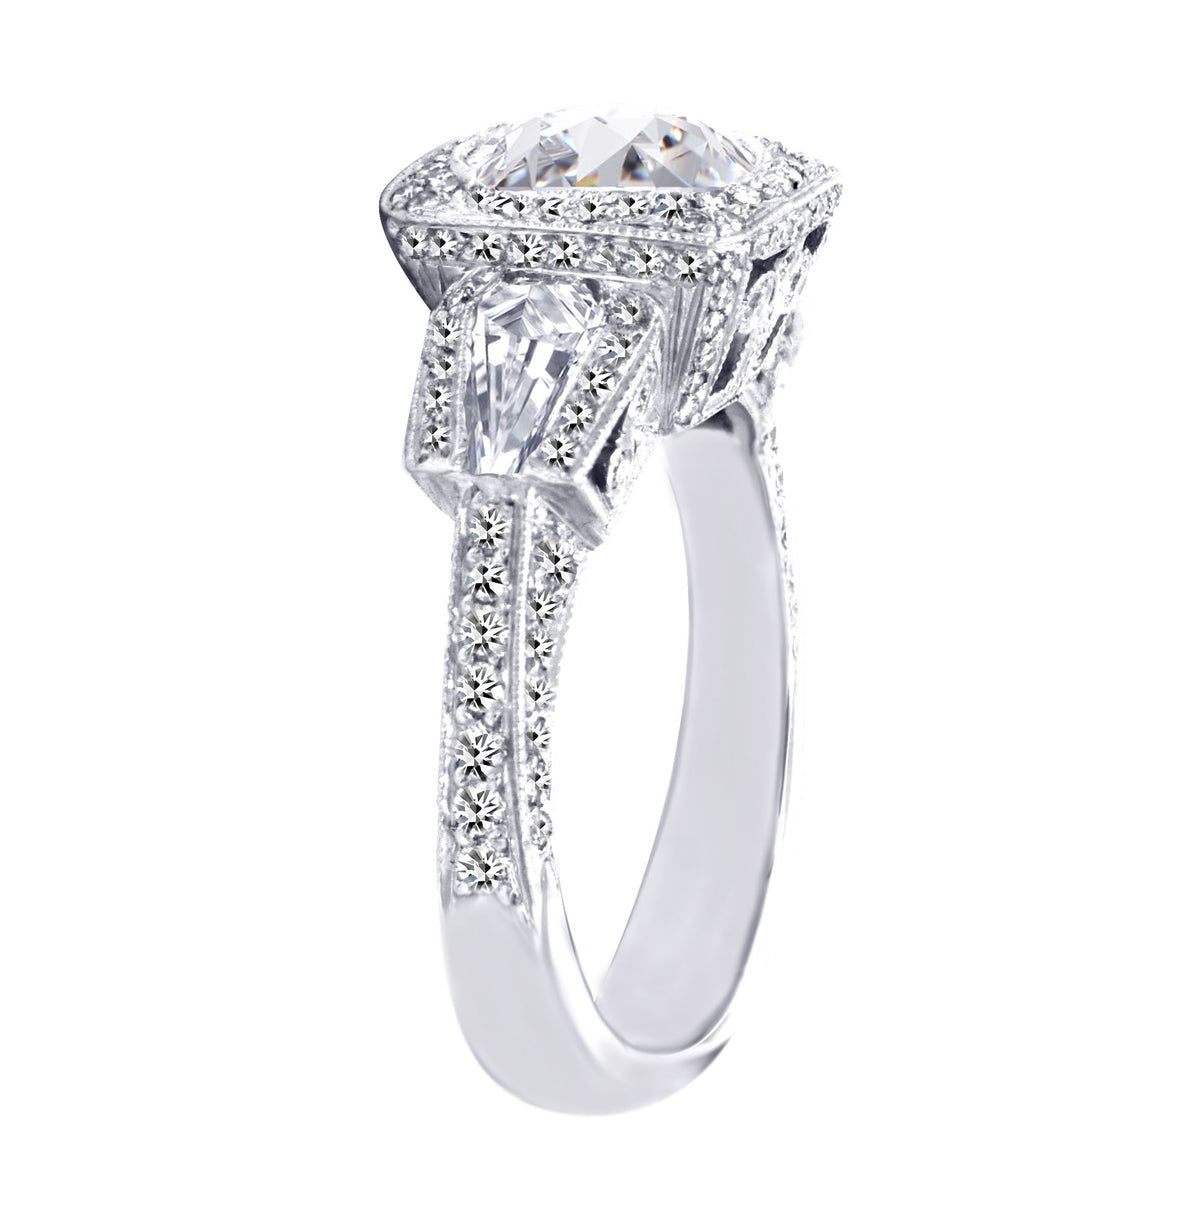 JB Star Platinum Round Brilliant Cut Diamond Ring with a Cushion Halo